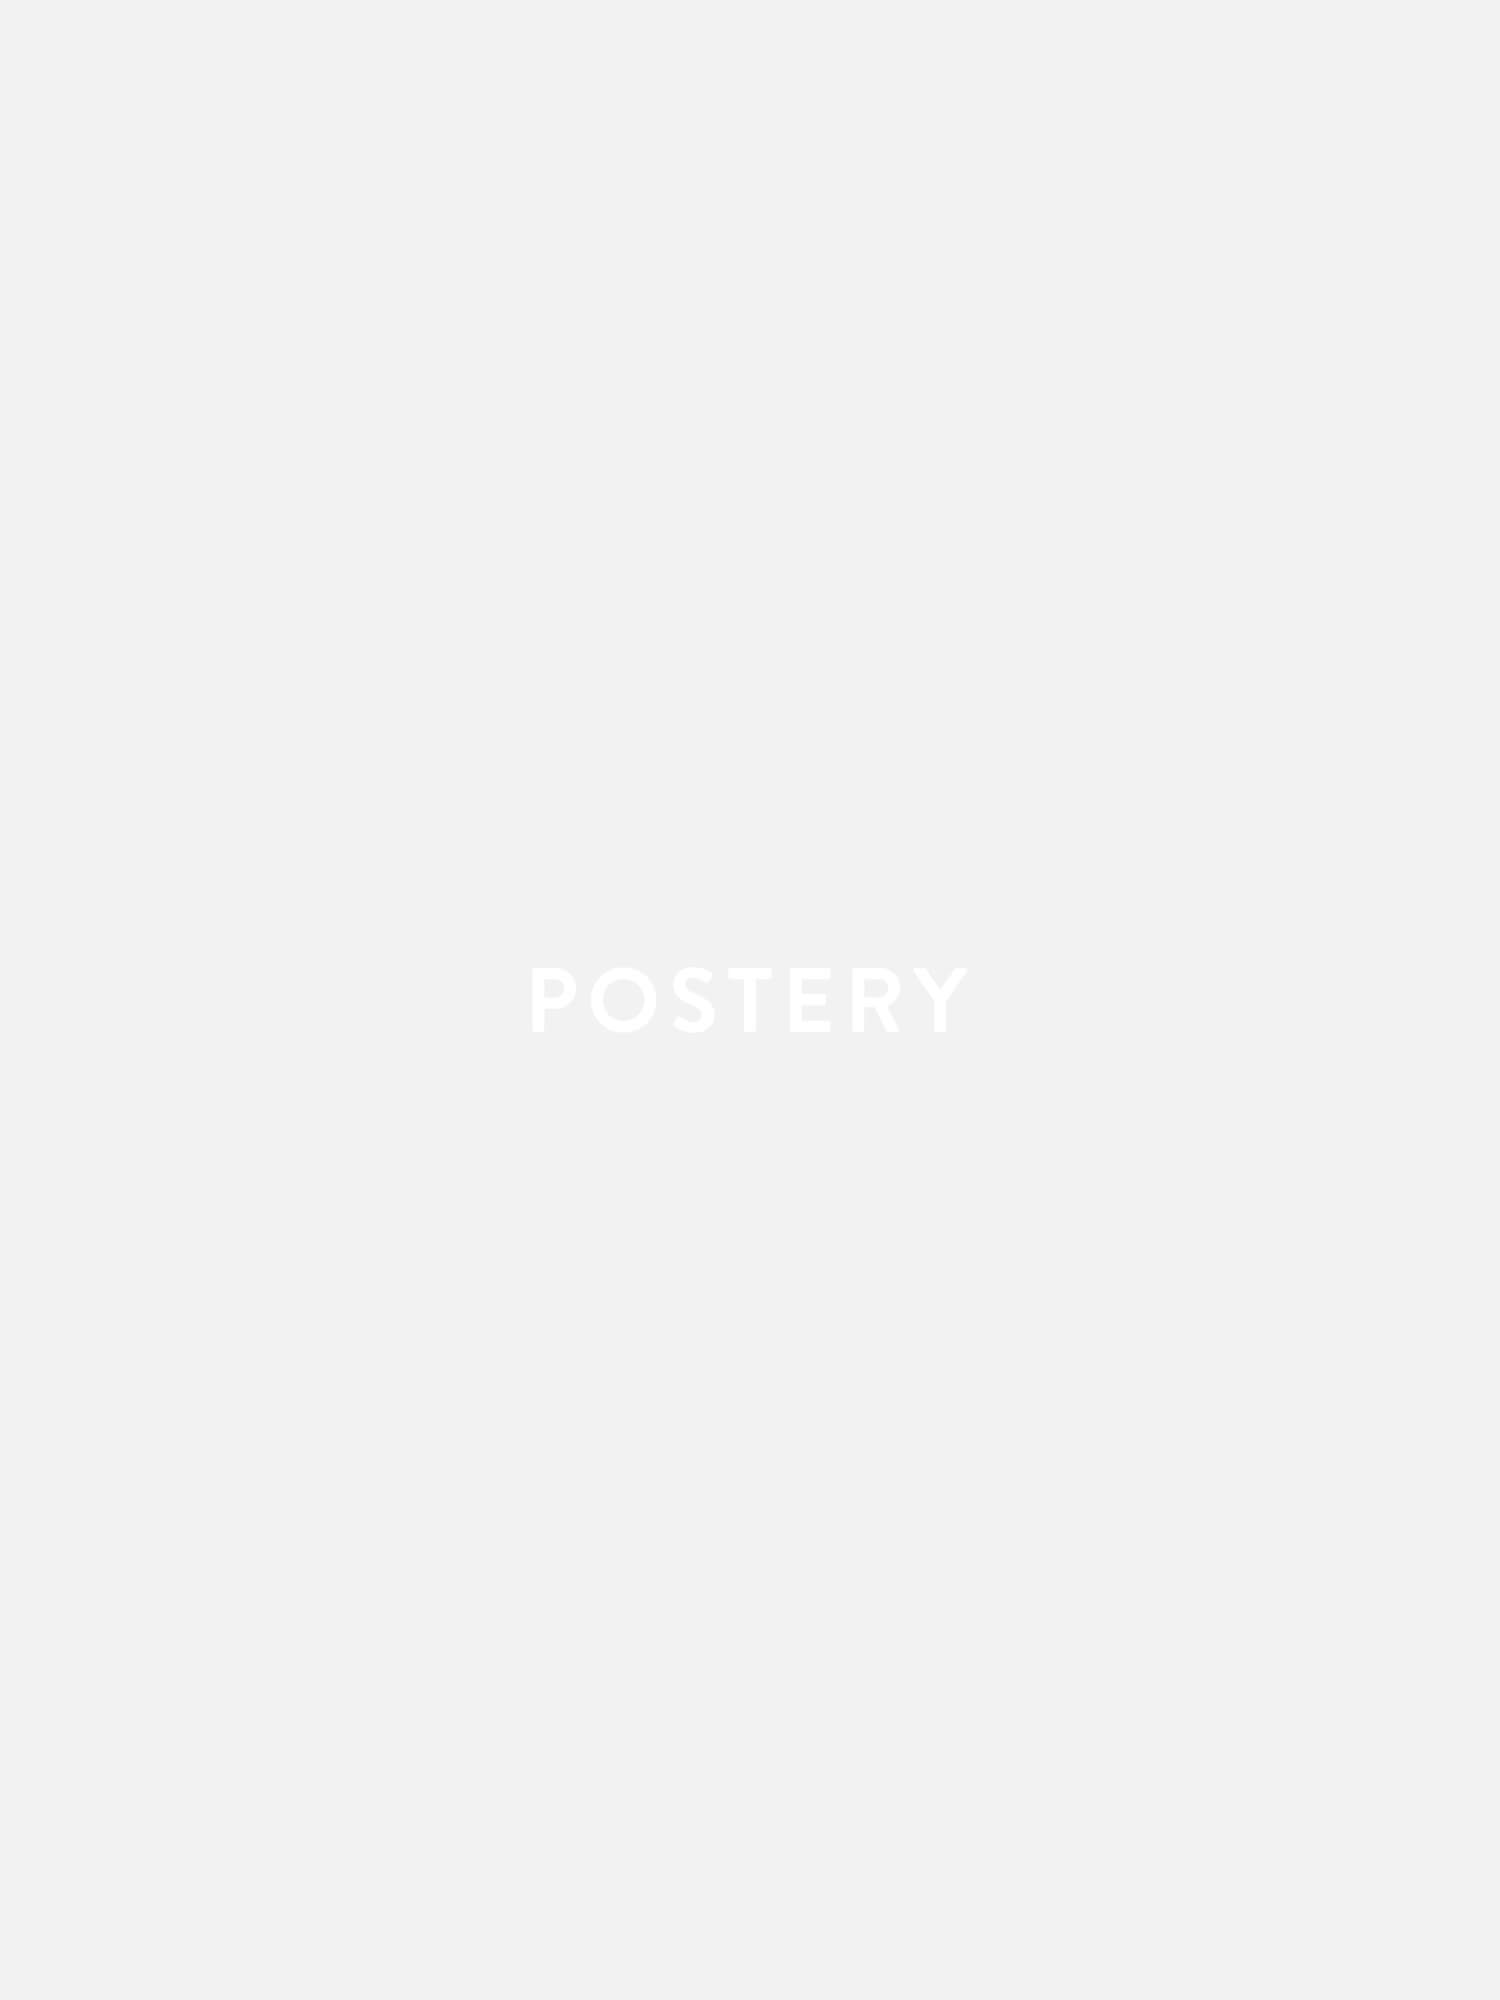 Chilling Bear Poster